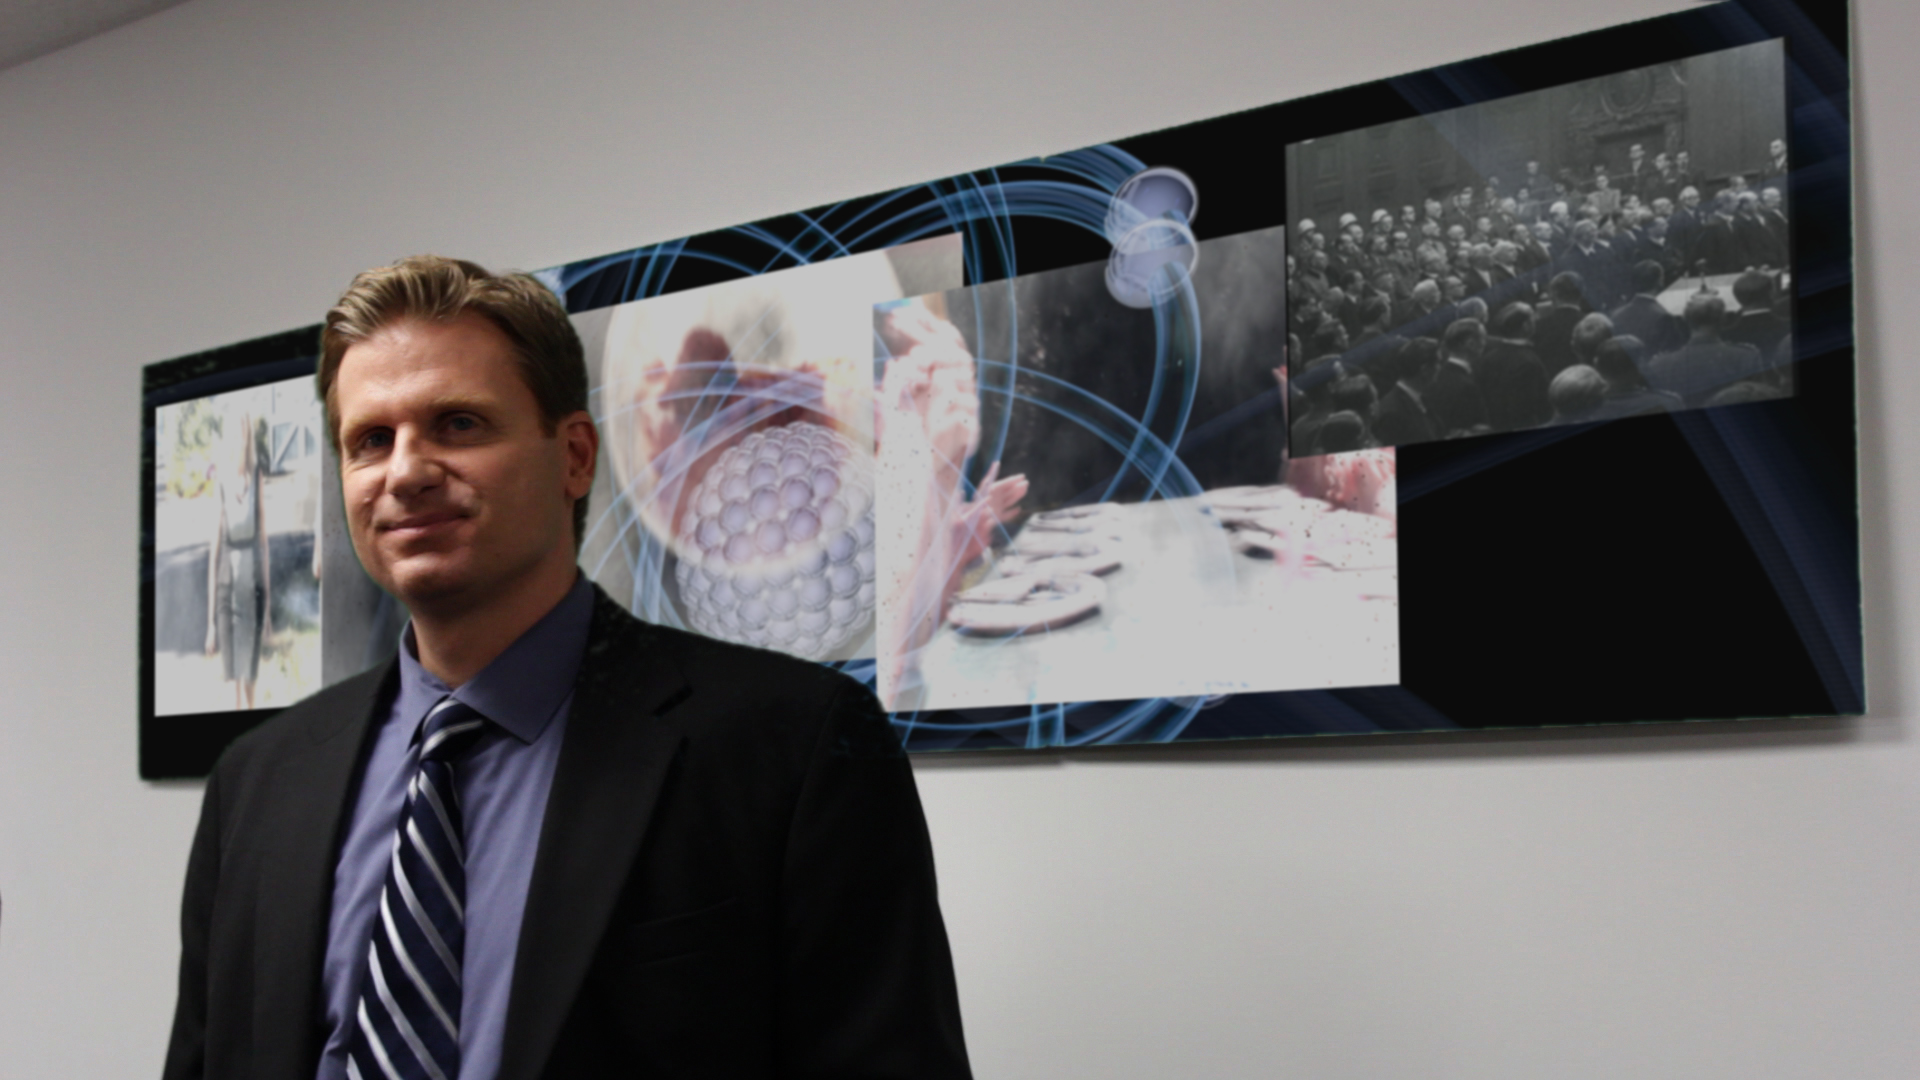 Reincar Scientific's chief legal counsel watches the trial on TV.